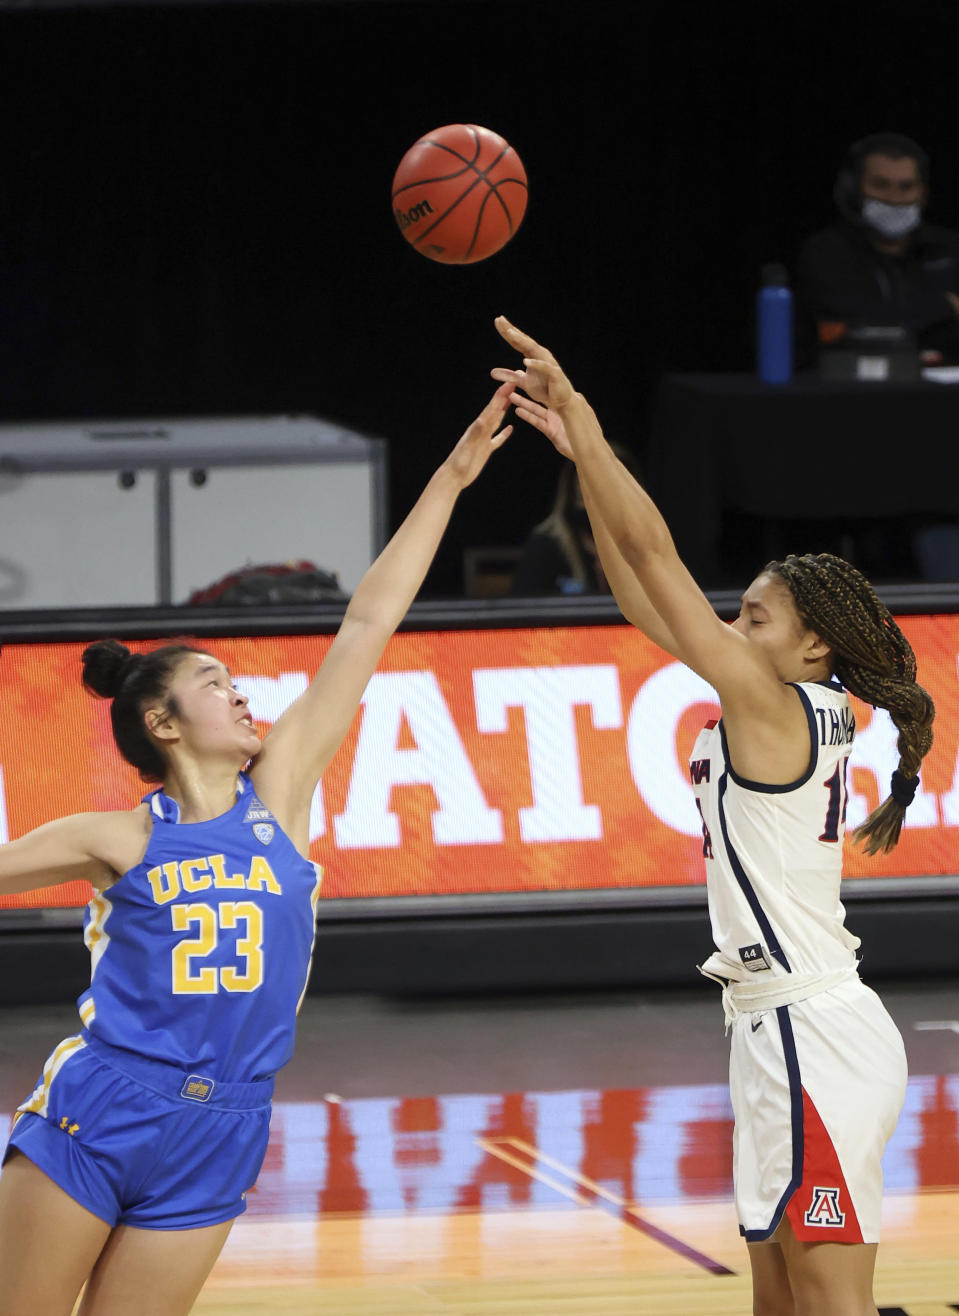 Arizona forward Sam Thomas (14) shoots as UCLA guard Natalie Chou (23) defends during the first half of an NCAA college basketball game in the semifinals of the Pac-12 women's tournament Friday, March 5, 2021, in Las Vegas. (AP Photo/Isaac Brekken)